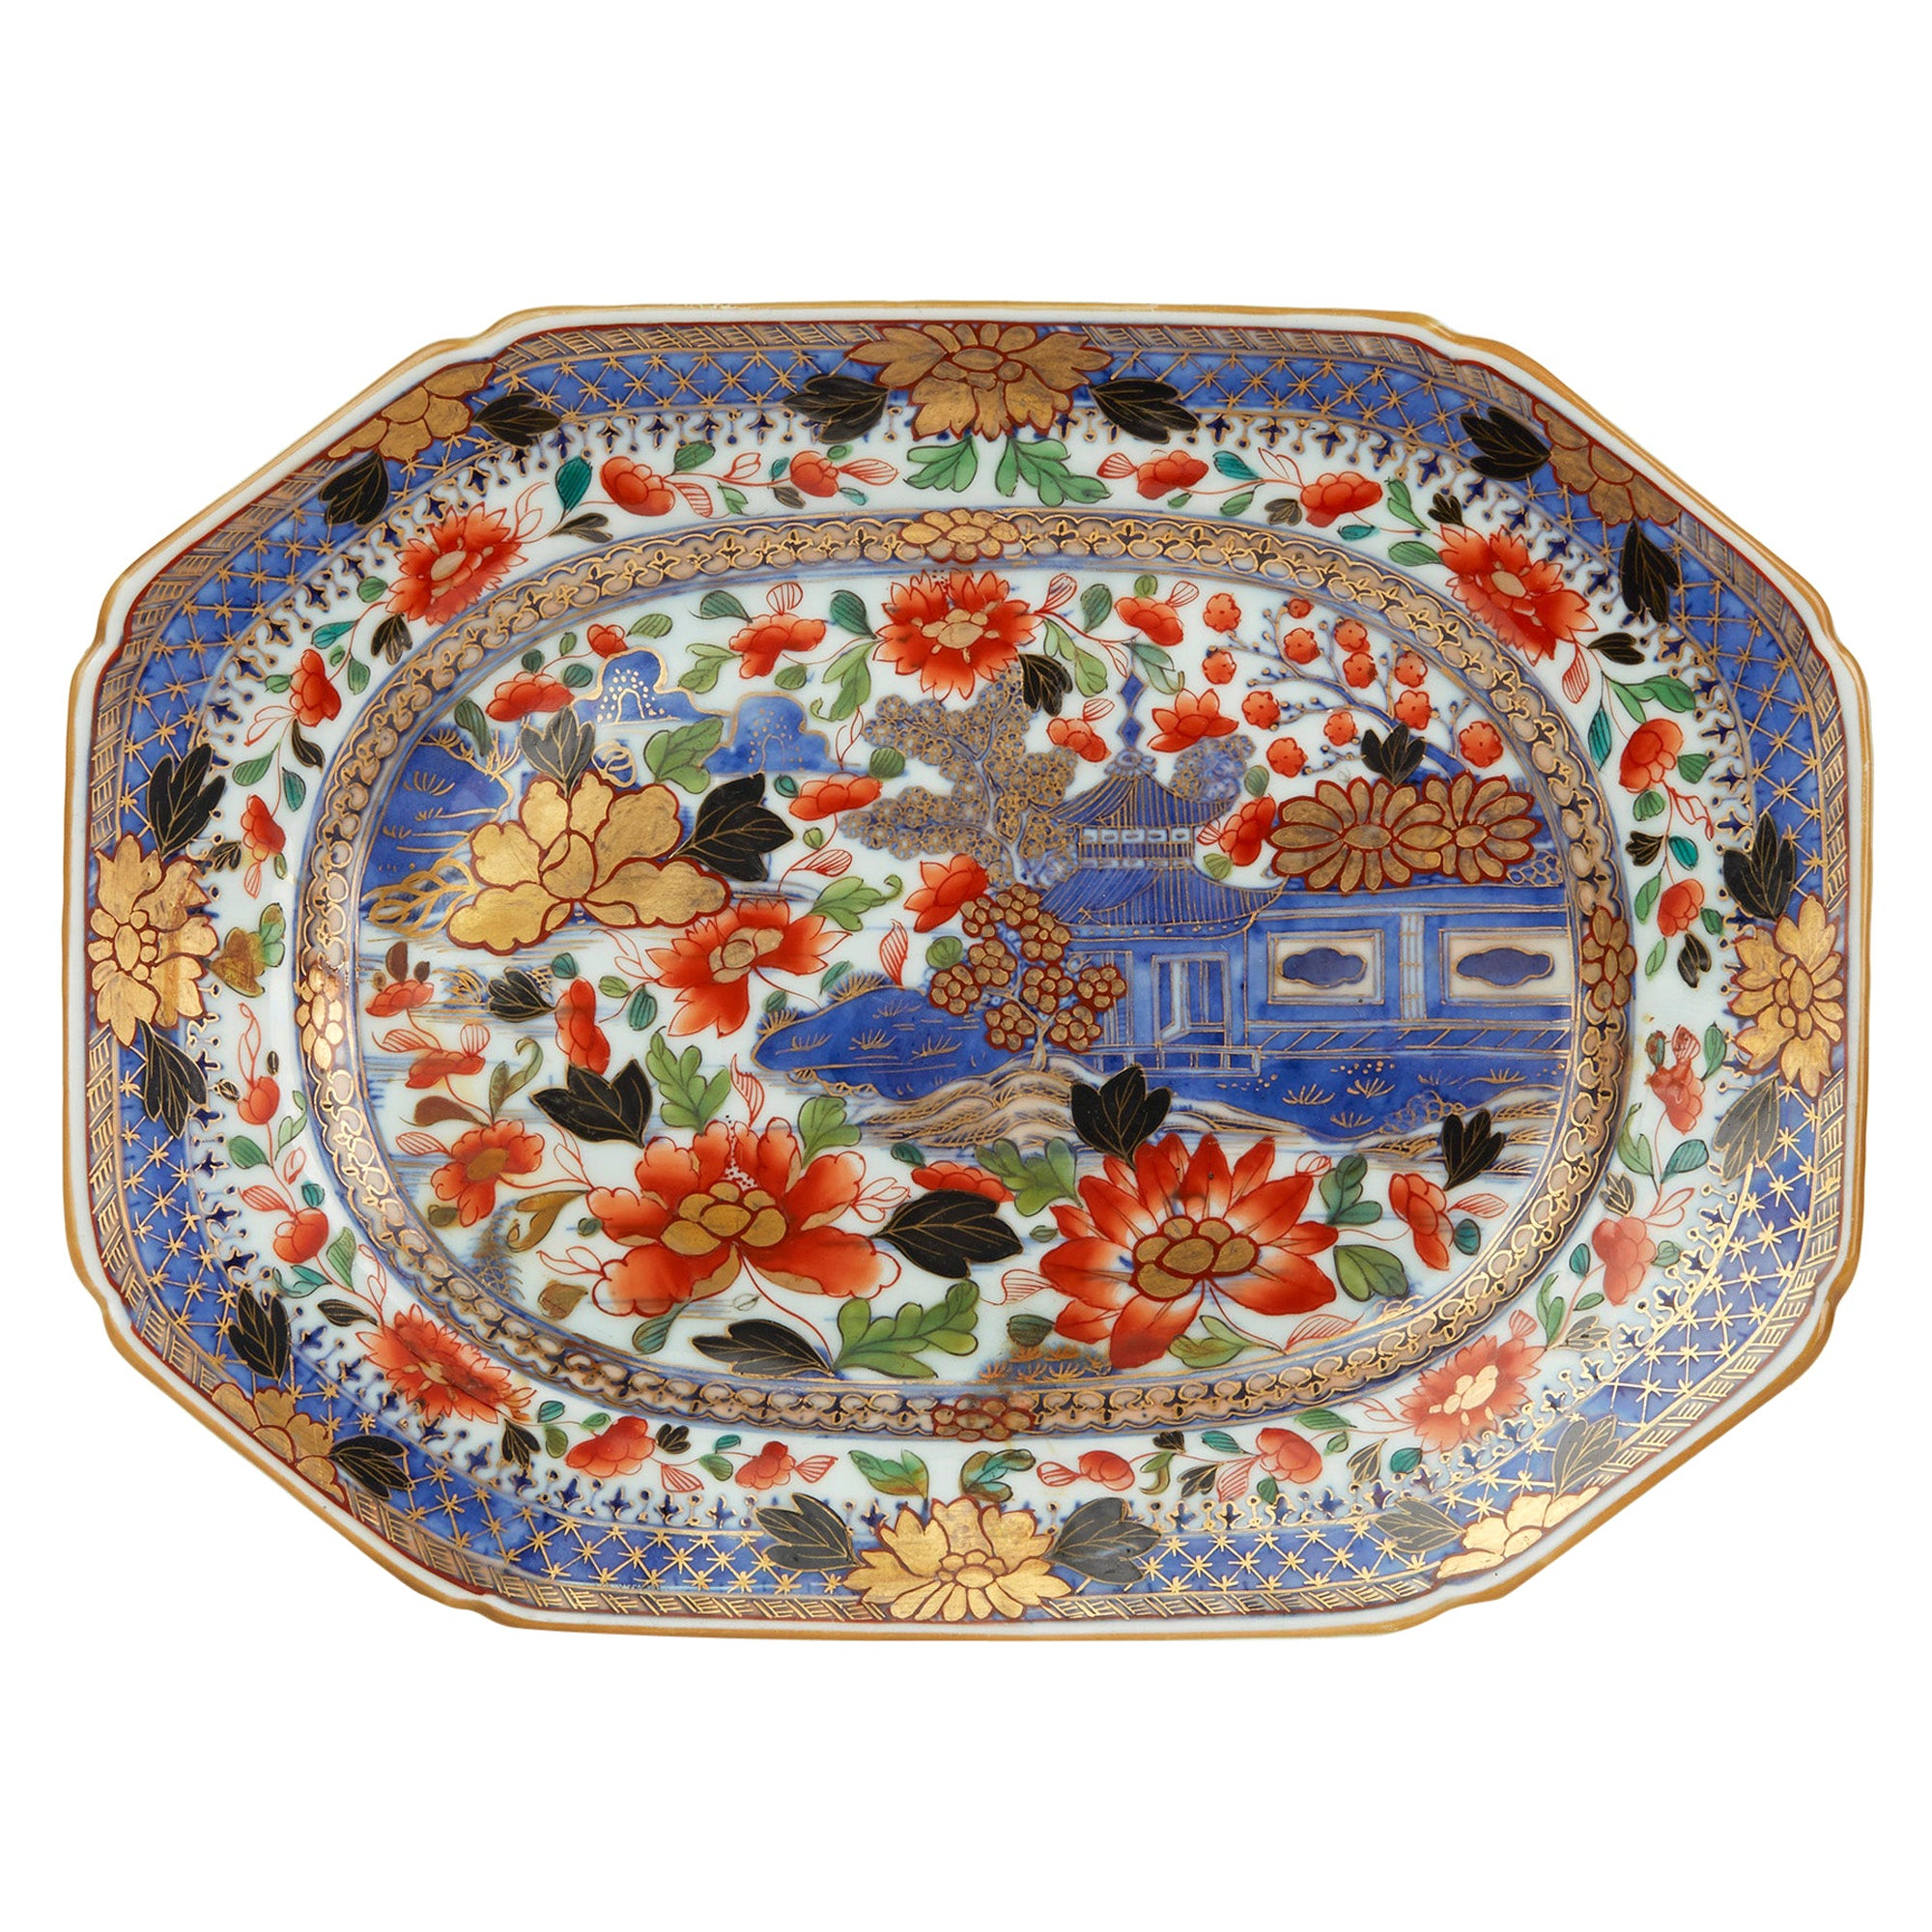 Exceptional Chinese Qianlong Porcelain Overpainted Serving Dish, circa 1760